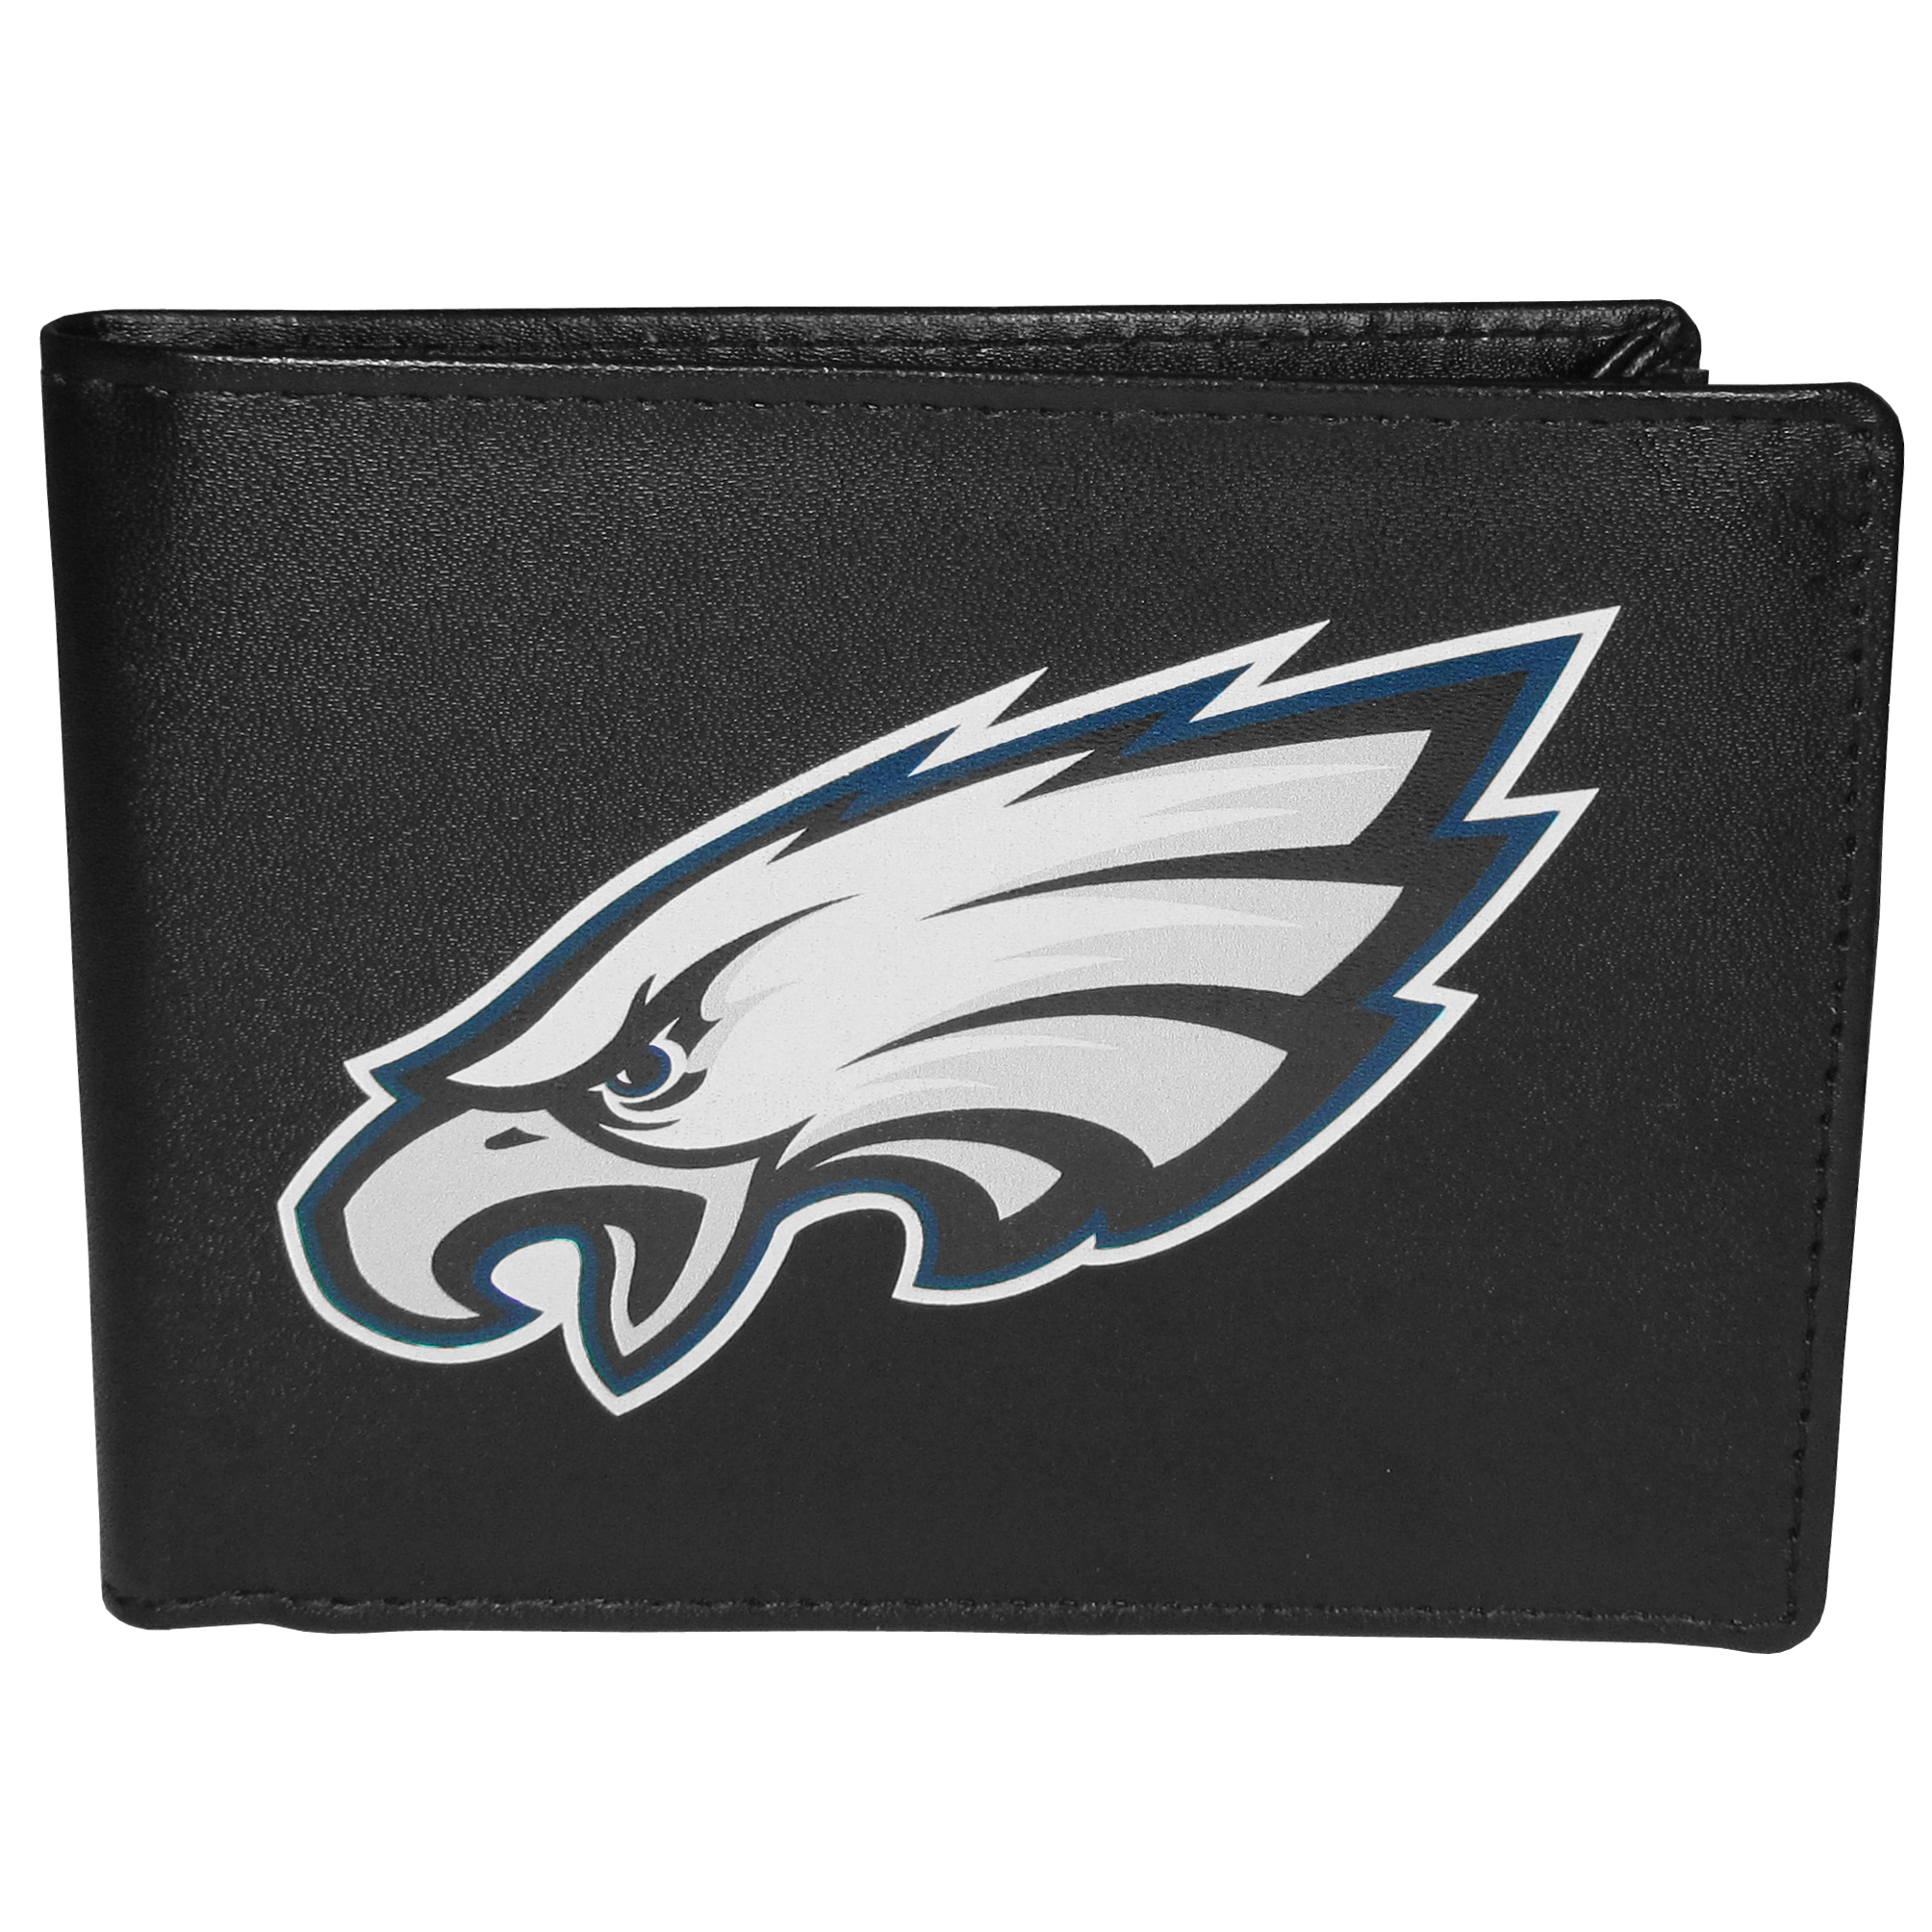 Philadelphia Eagles Bi-fold Wallet Large Logo - Sports fans do not have to sacrifice style with this classic bi-fold wallet that sports the Philadelphia Eagles extra large logo. This men's fashion accessory has a leather grain look and expert craftmanship for a quality wallet at a great price. The wallet features inner credit card slots, windowed ID slot and a large billfold pocket. The front of the wallet features a printed team logo.